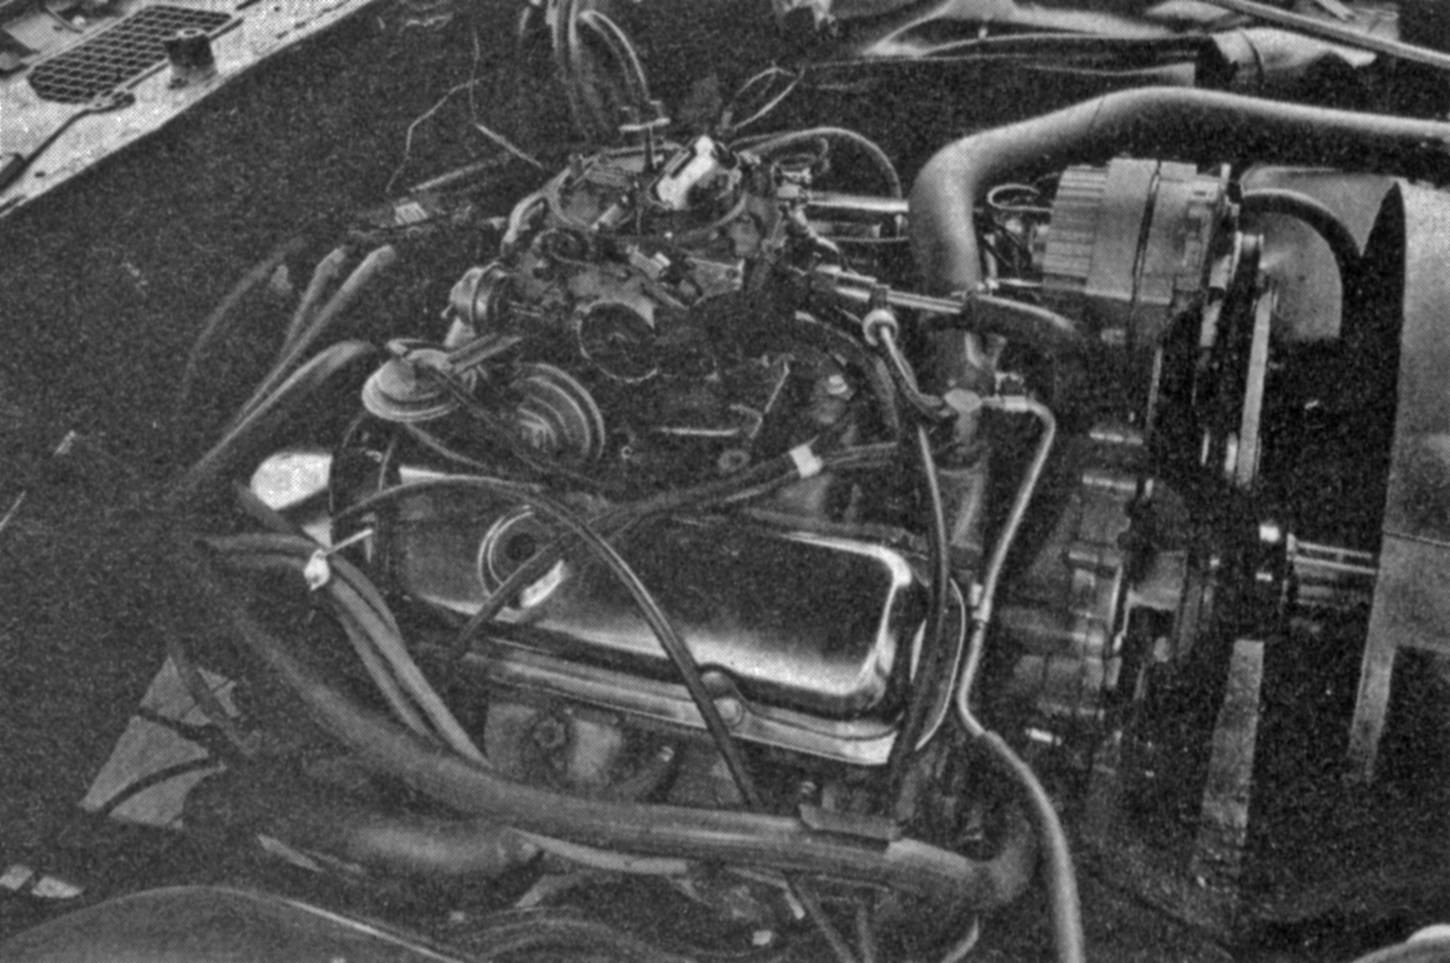 medium resolution of 1977 non a c spec w72 engine note flash chromed valve covers